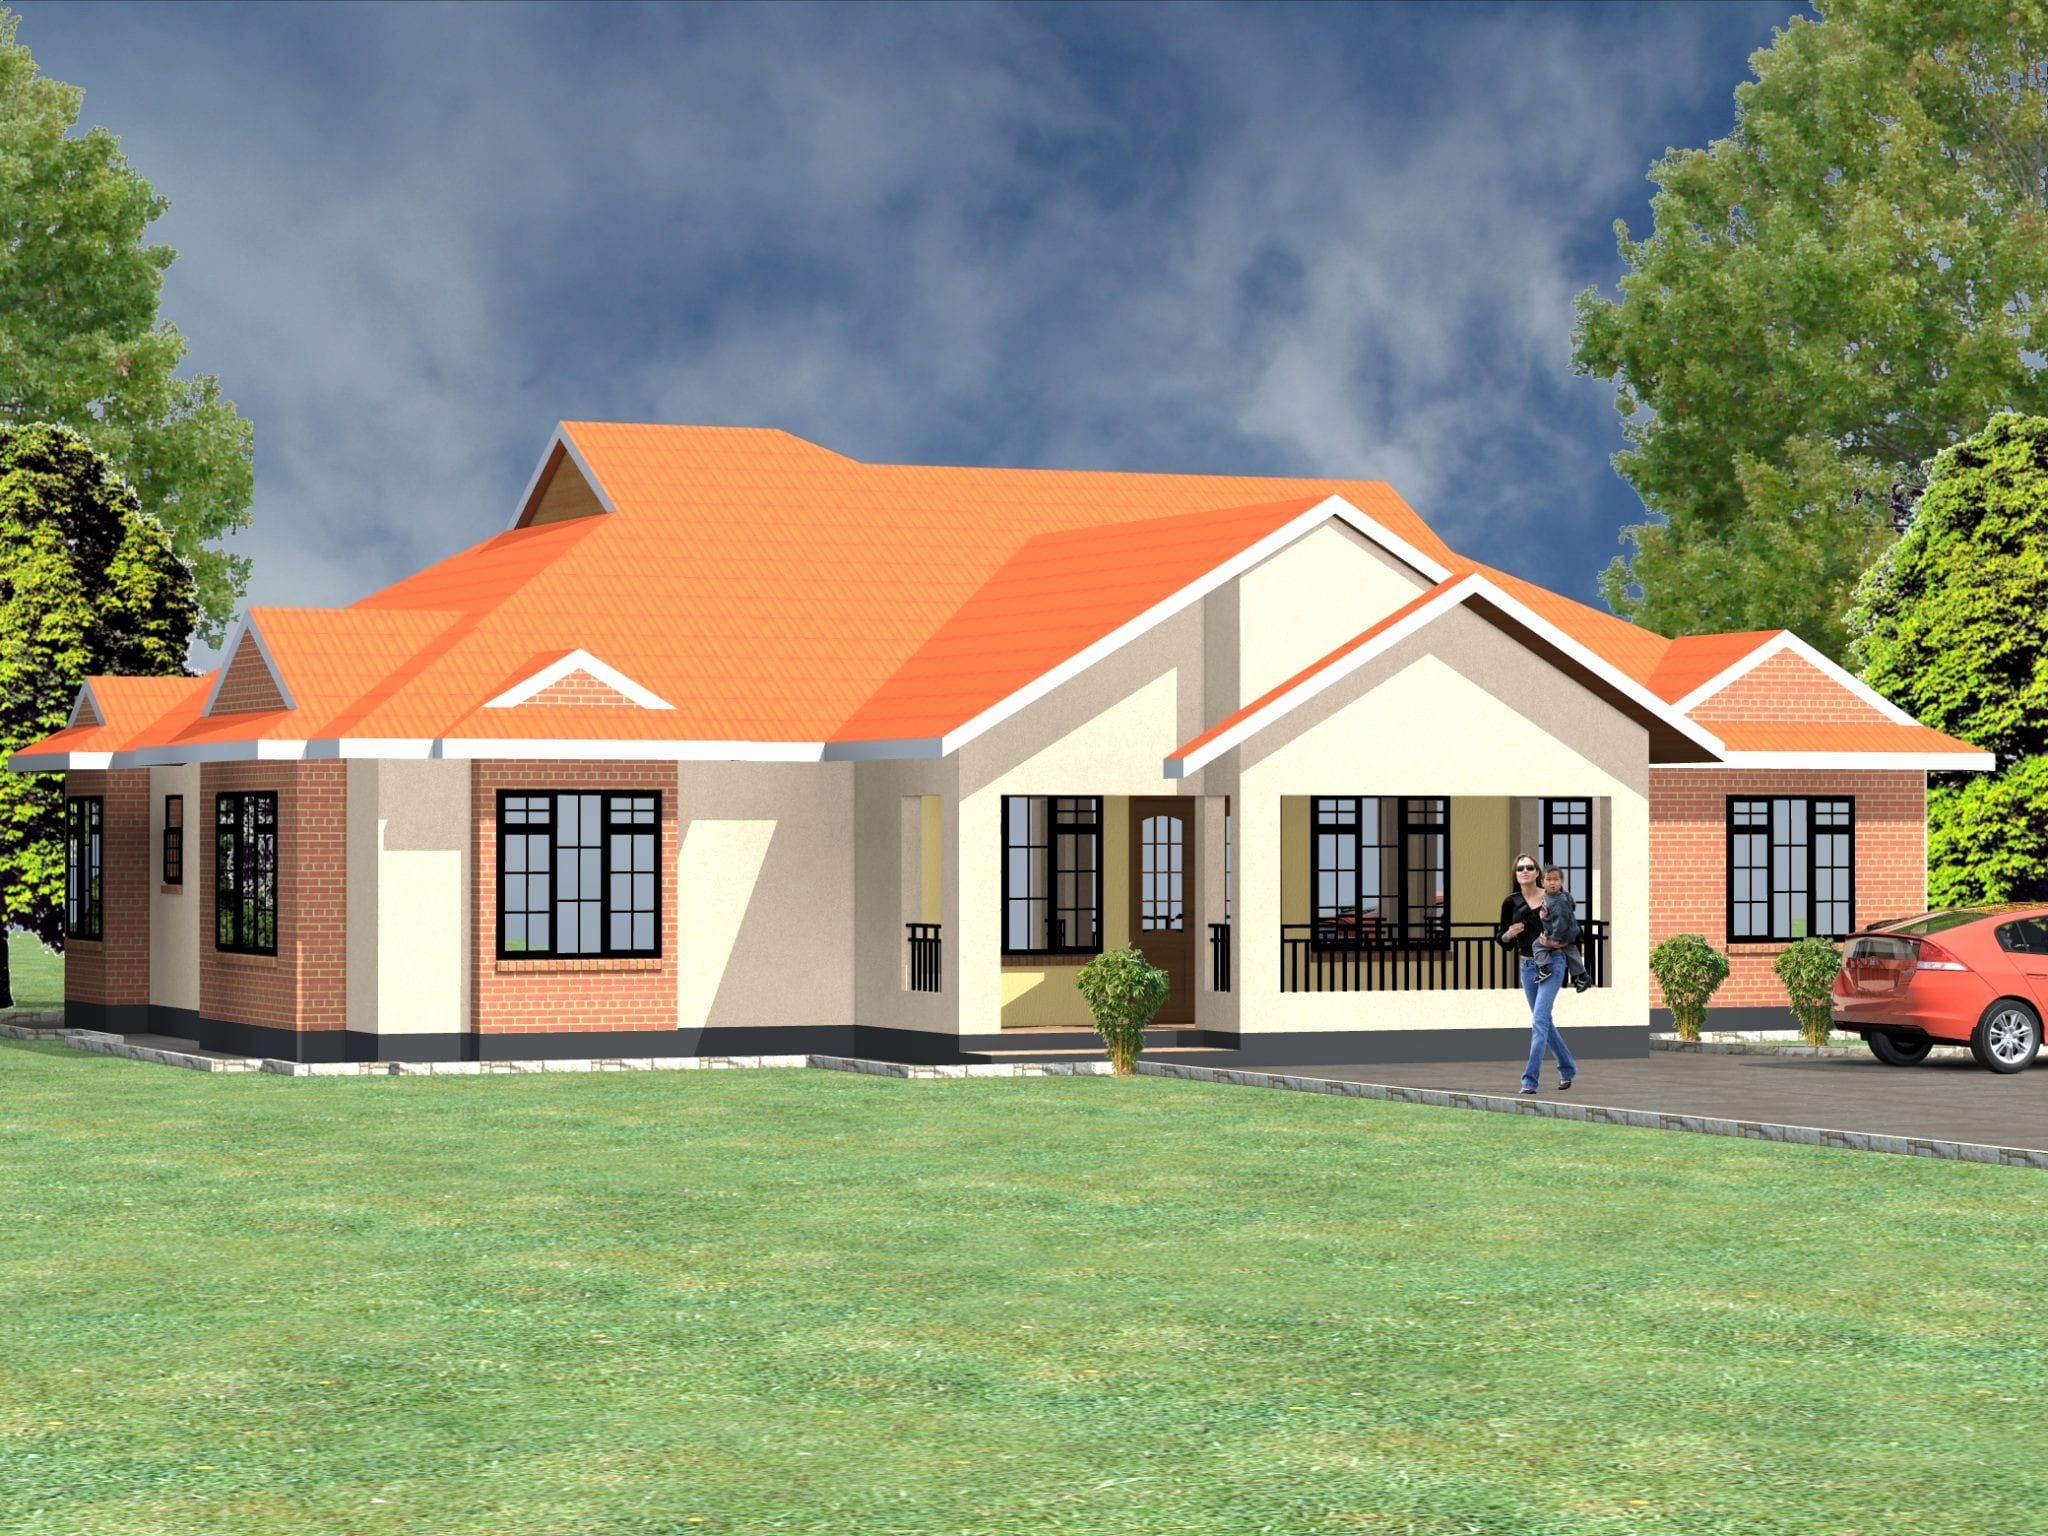 4 Bedroom Bungalow House Plans Beautiful Four Bedroom Bungalow House Plans In Kenya House Plans Beautiful House Plans Bungalow House Plans